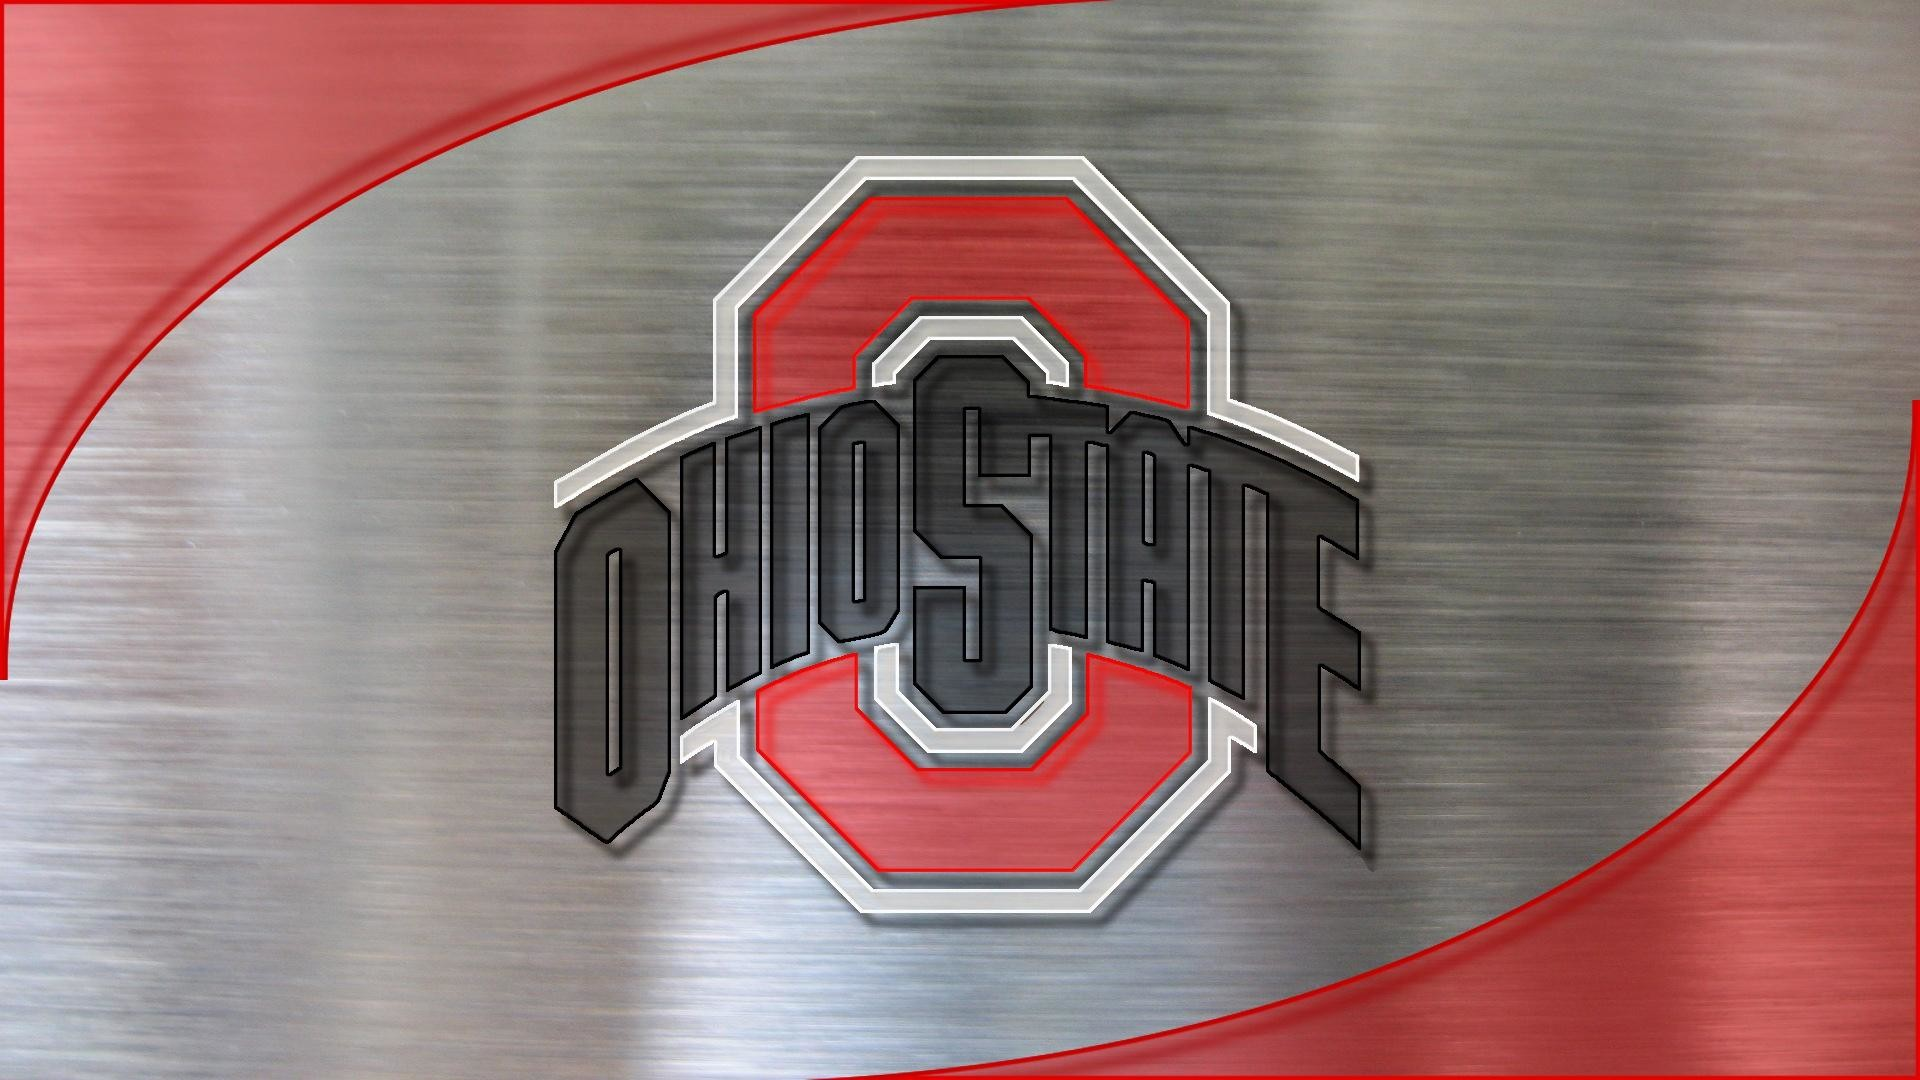 Ohio state screensavers and wallpaper 78 images - Ohio state football wallpaper ...